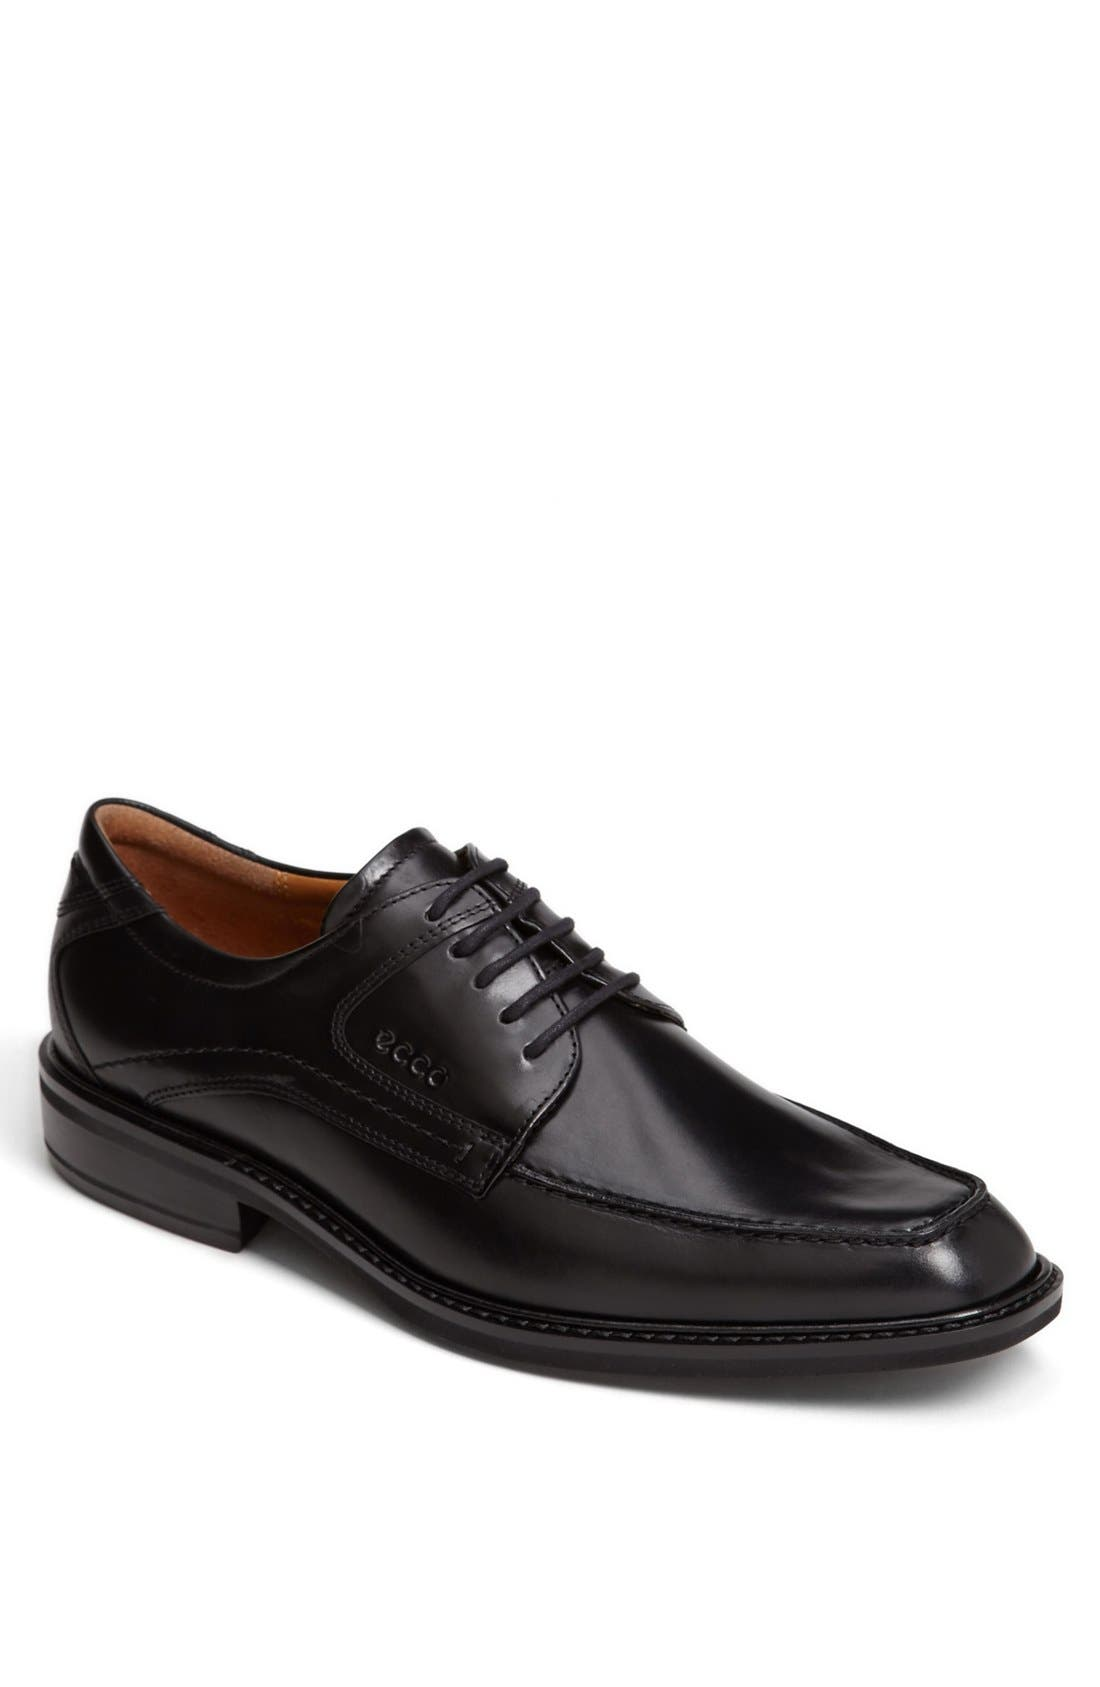 Main Image - ECCO 'Windsor' Apron Toe Derby (Men). Color: Black